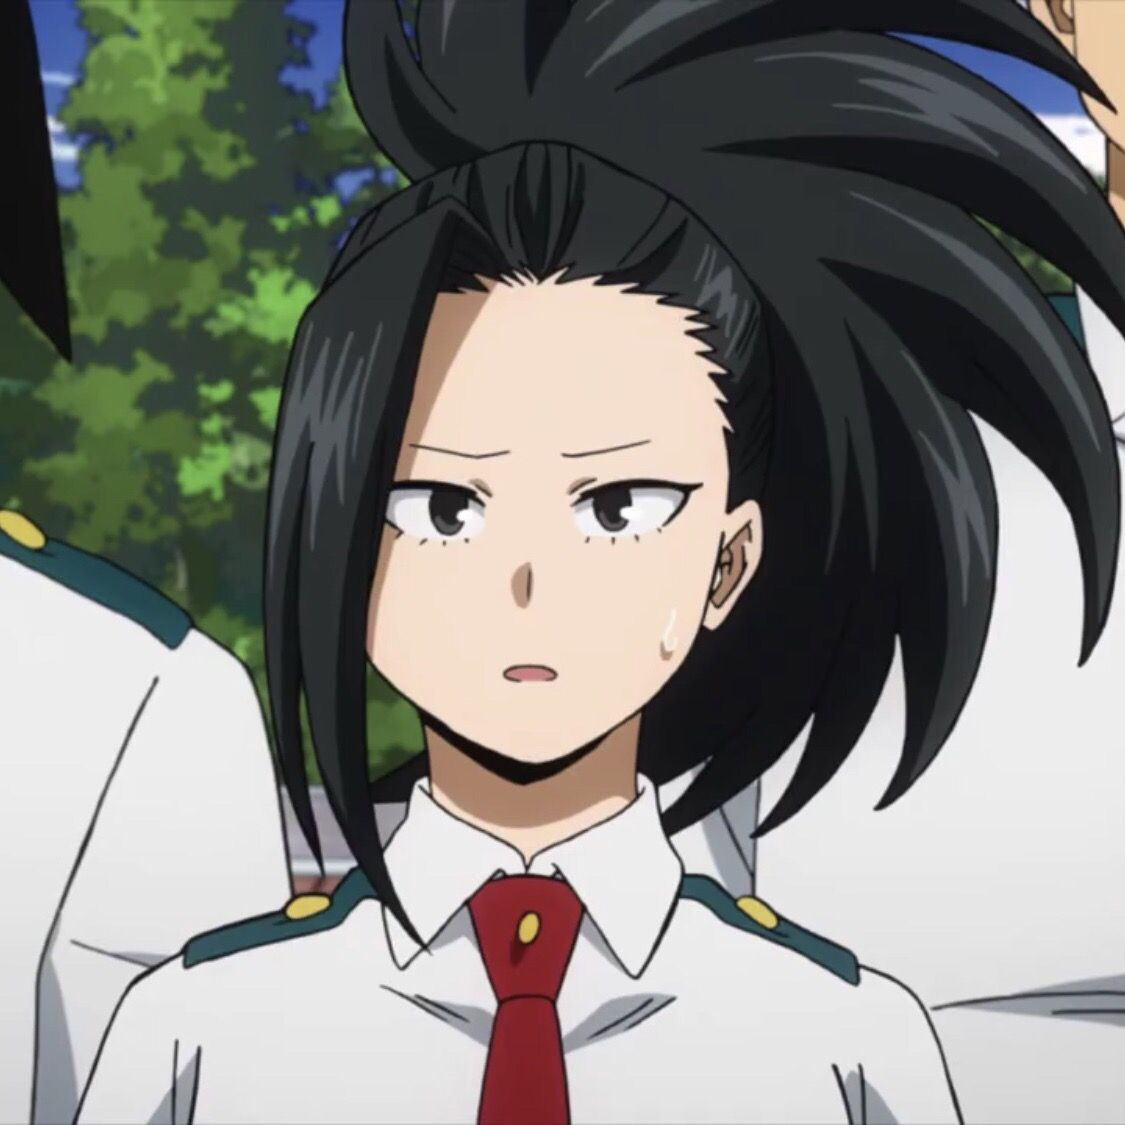 Female Anime Hairstyles The Weird And The Favourites Milkcananime